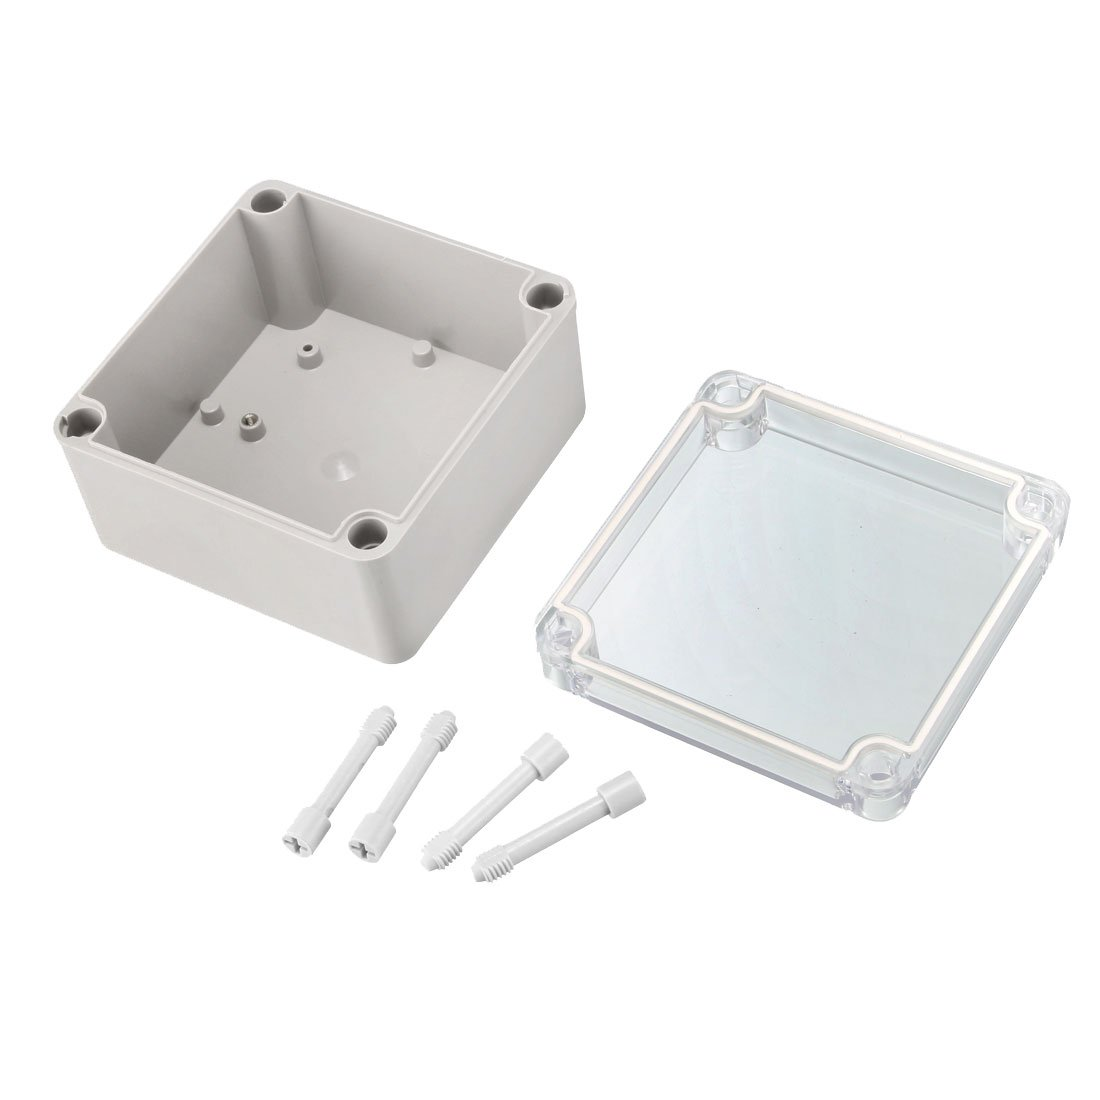 sourcingmap 200 x 120 x 75mm Electronic Plastic DIY Junction Box Enclosure Case w Clear Cover